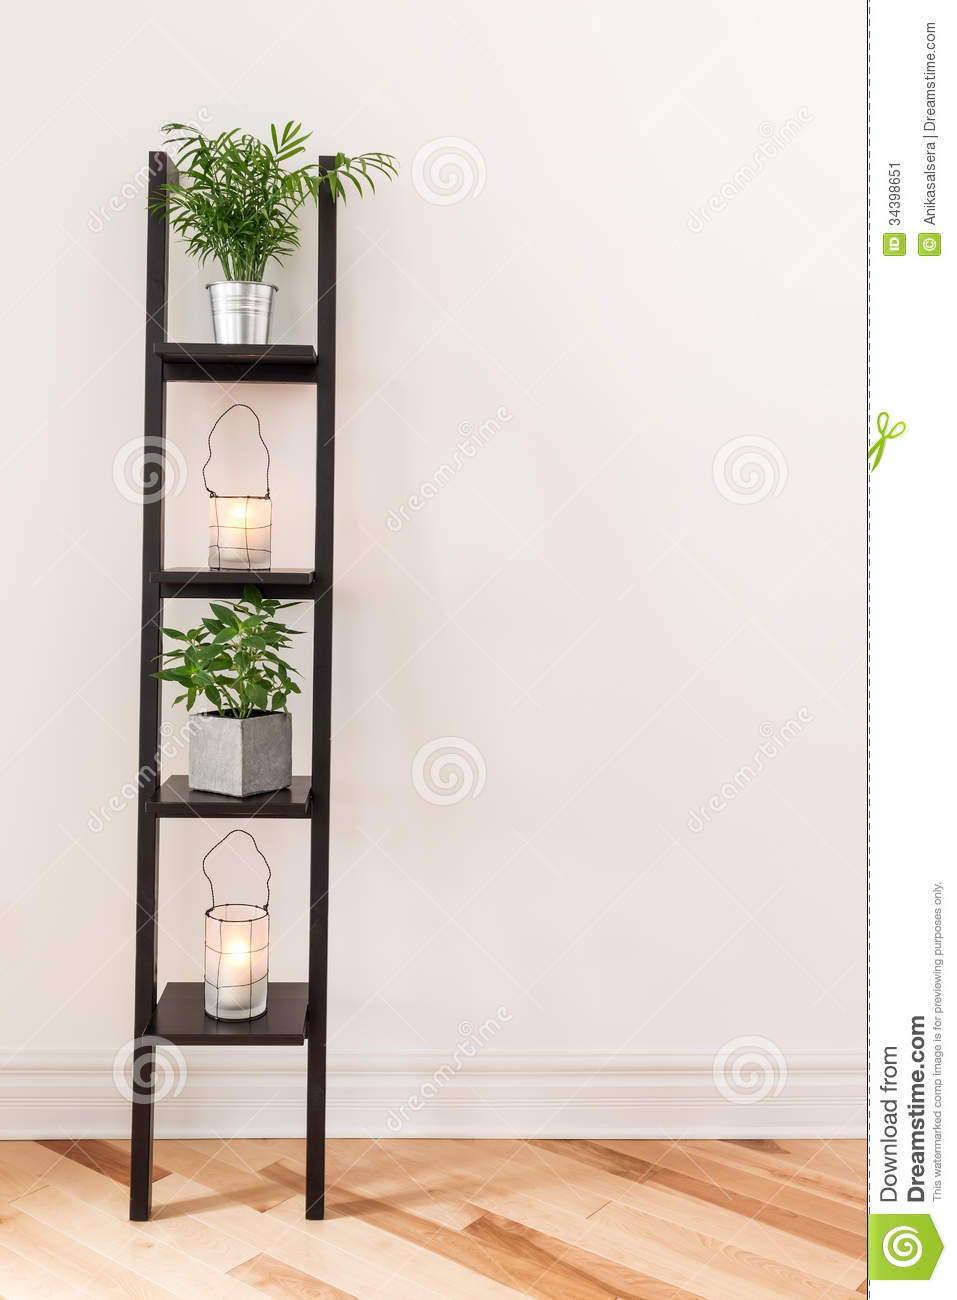 Shelf with plants and lanterns royalty free stock photo Plant room design